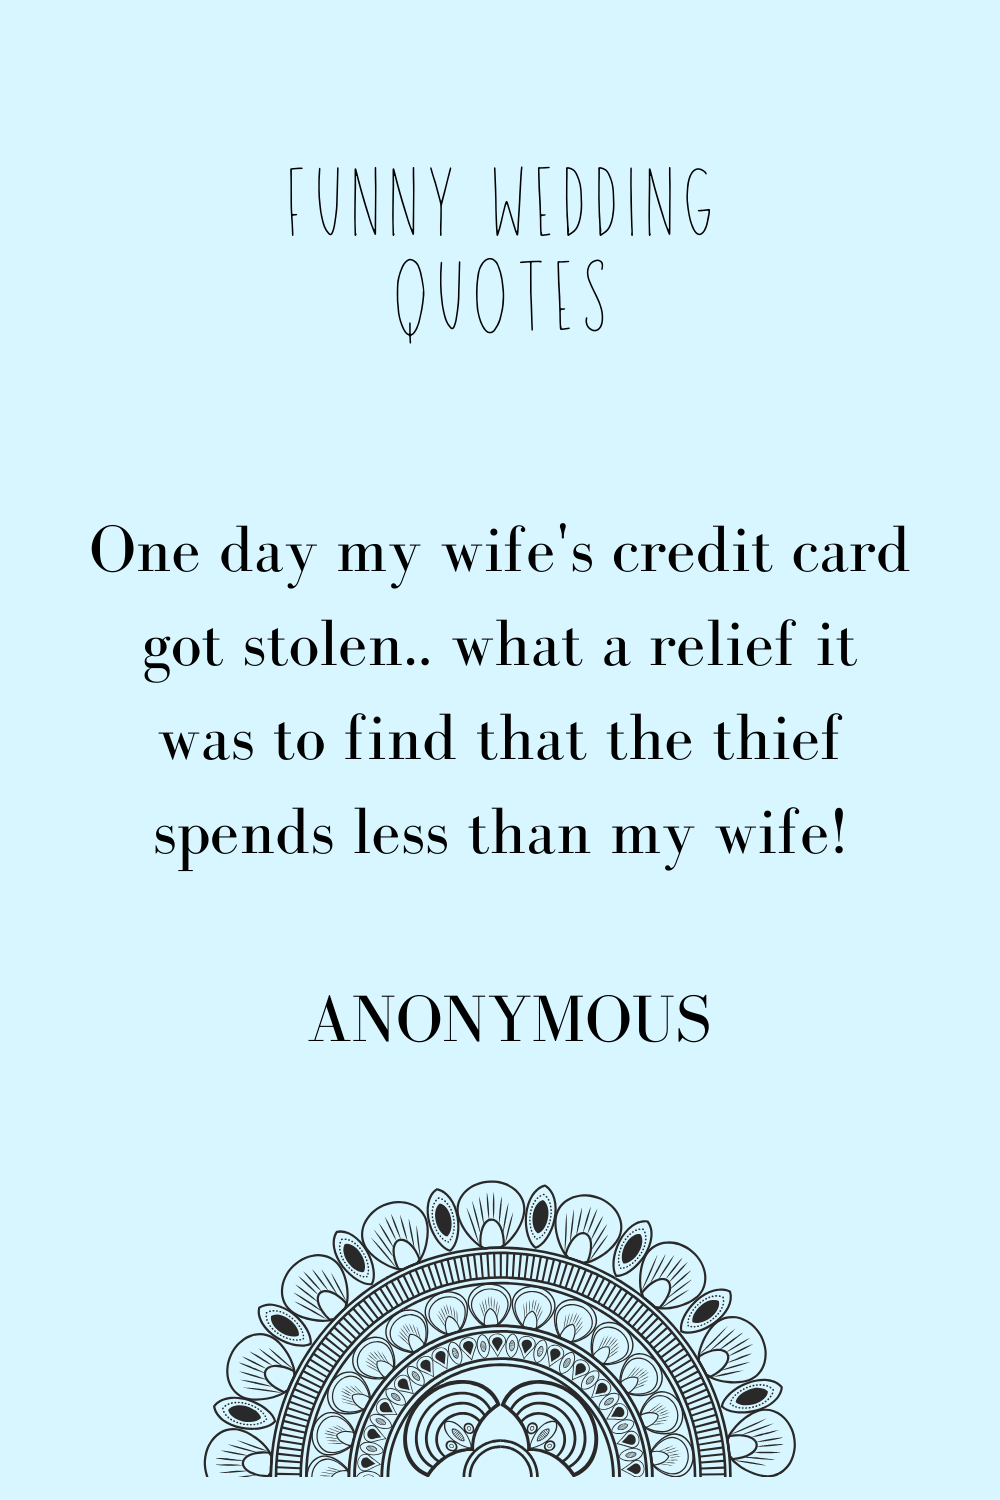 Funny Marriage Quotes That Can Be Used On Signs They Will Be Great Ice Breakers Among Guests In 2020 Marriage Quotes Funny Wedding Quotes Funny Happy Marriage Quotes